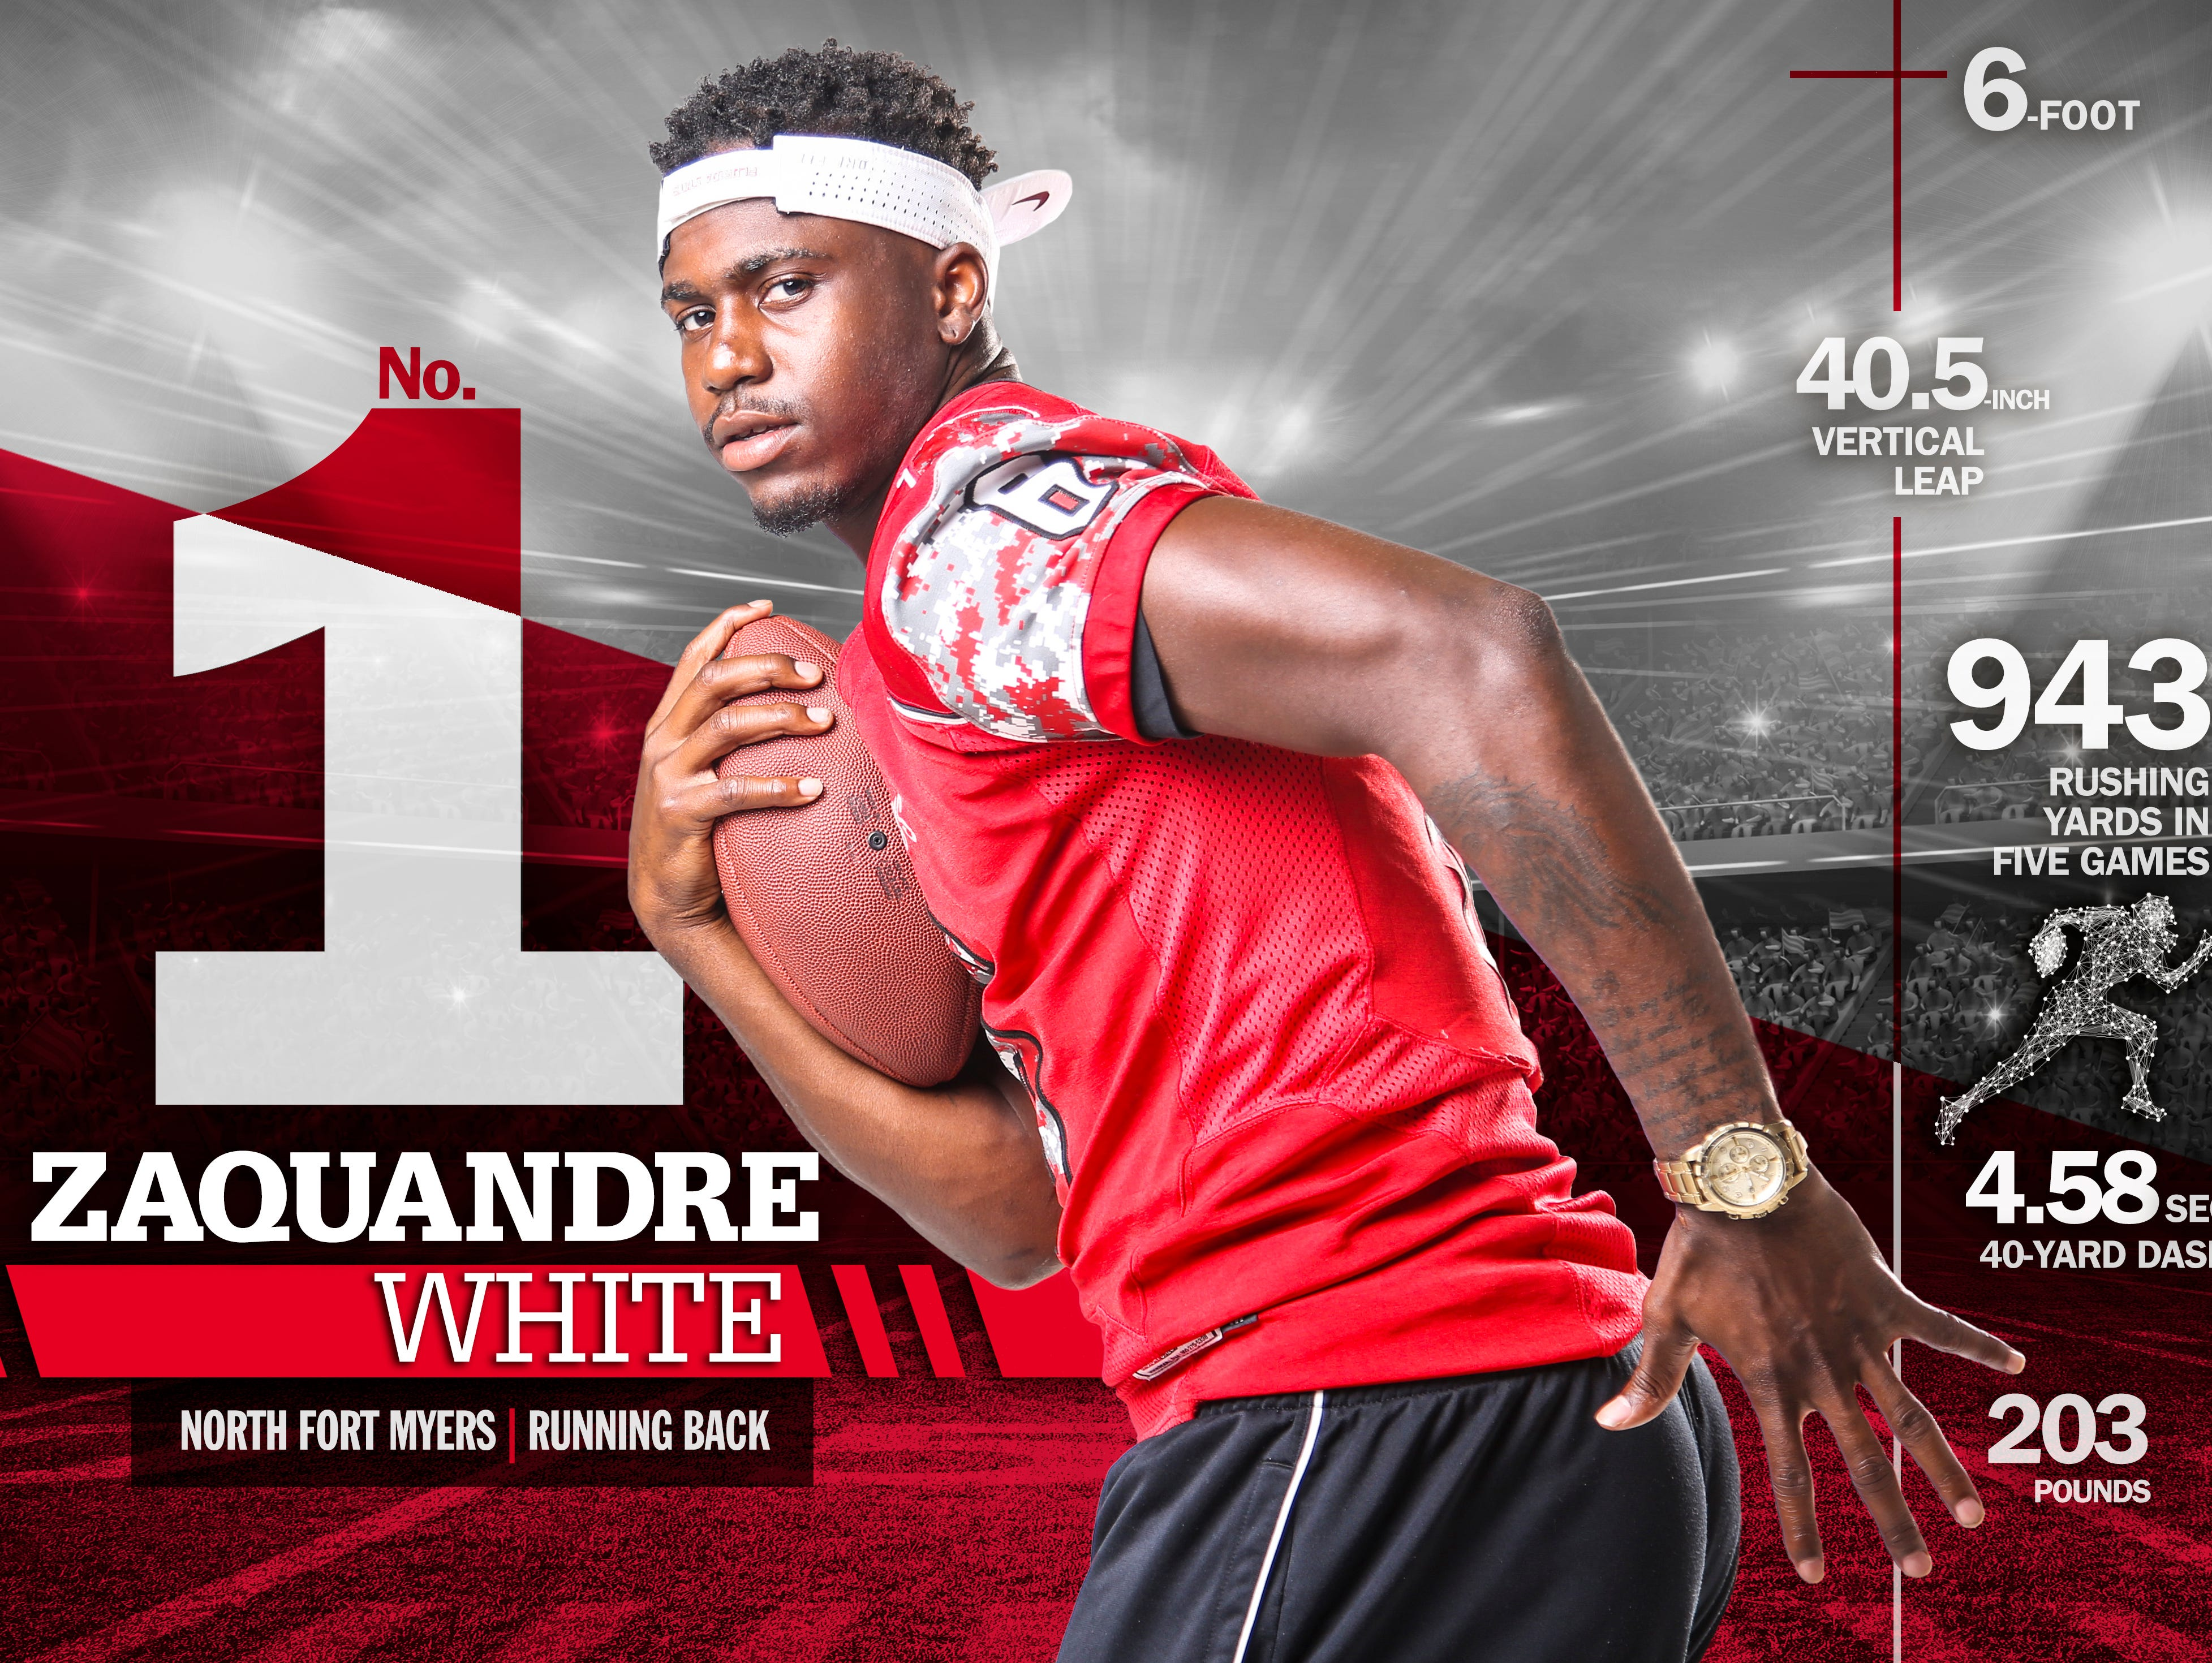 Zaquandre White, South Fort Myers